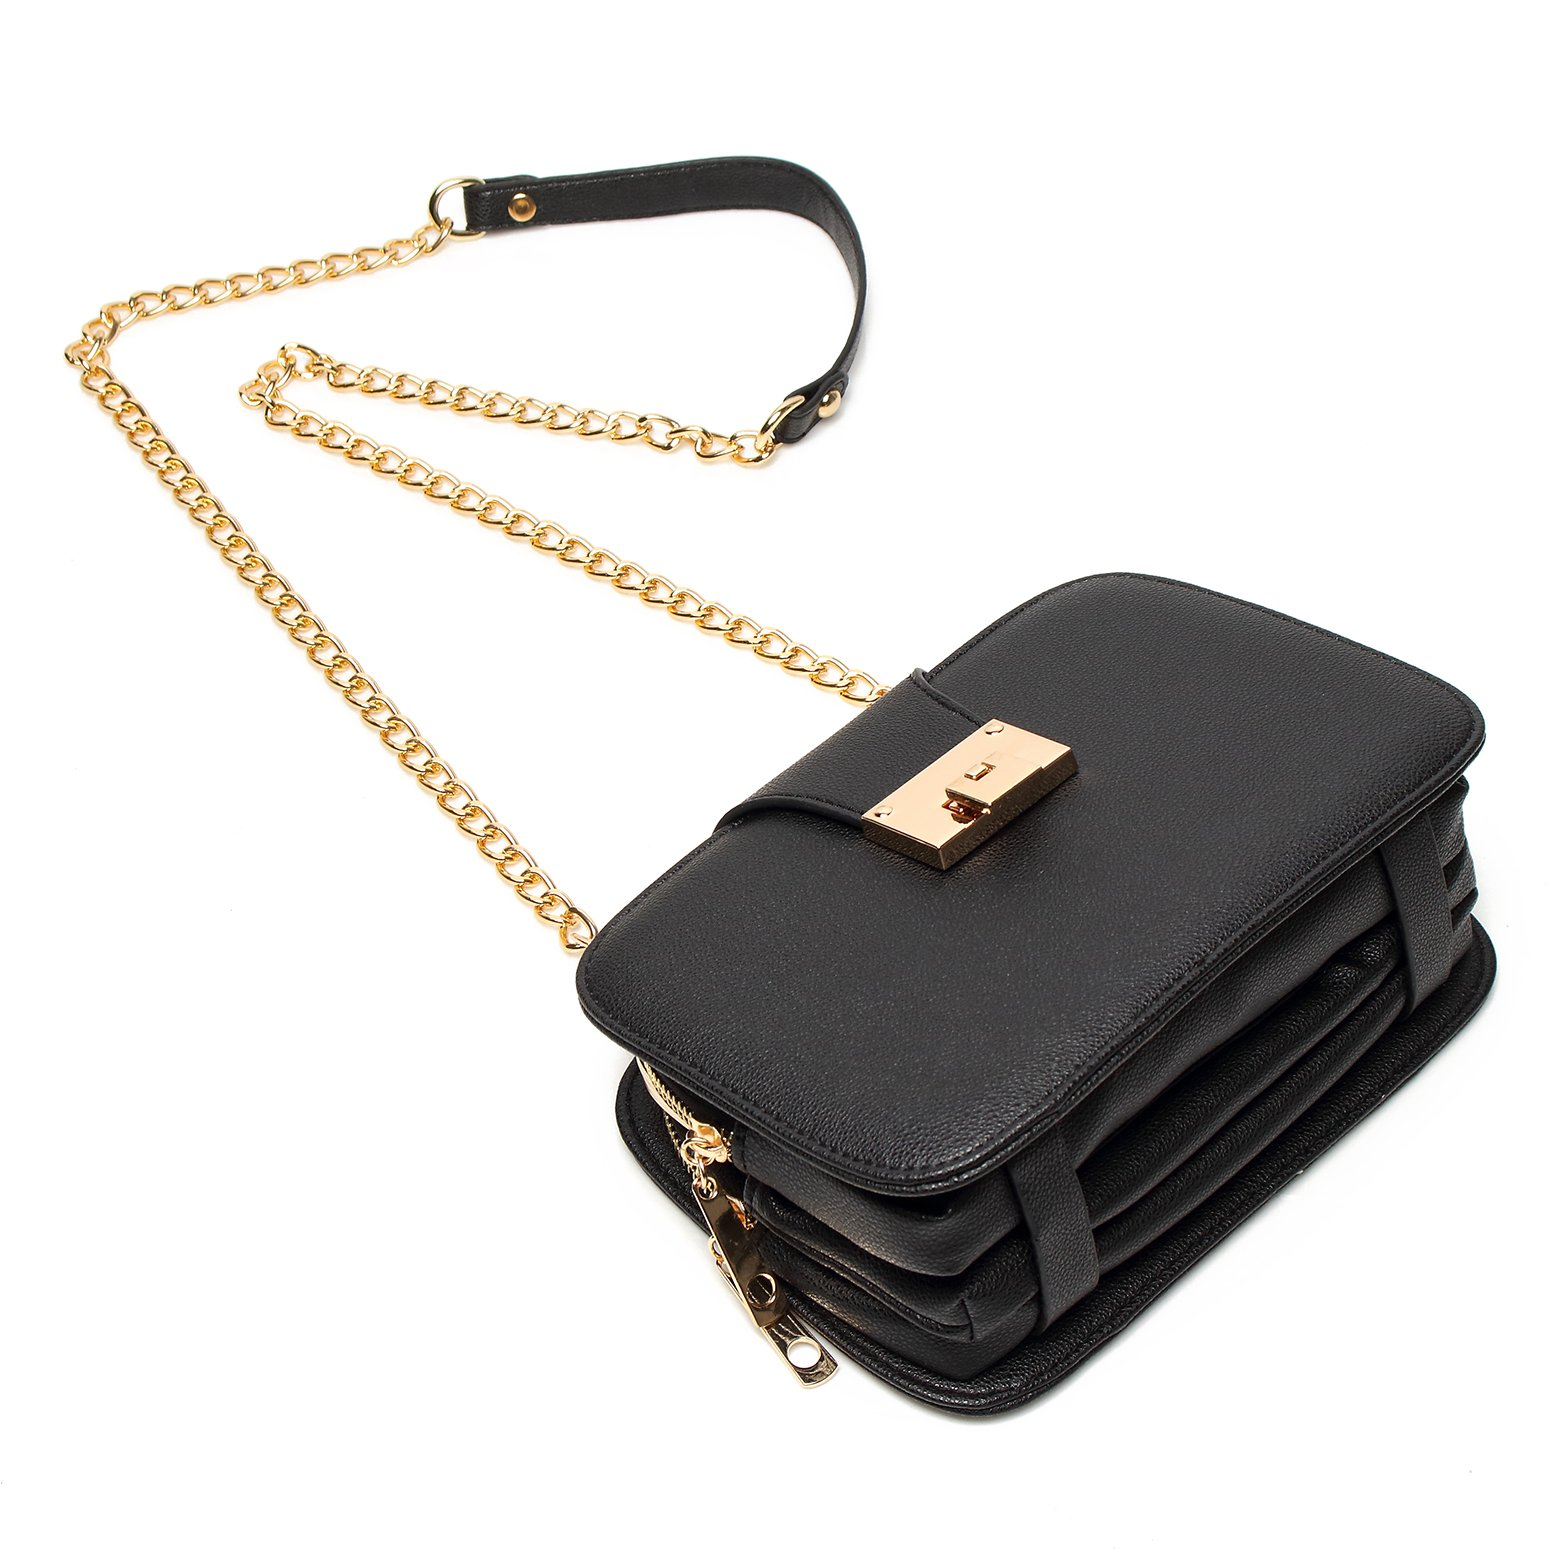 Forestfish Ladies' Black PU Leather Shoulder Bag Purse Evening Clutch Bags Crossbody Bag with long Metal Chain Strap(Black)